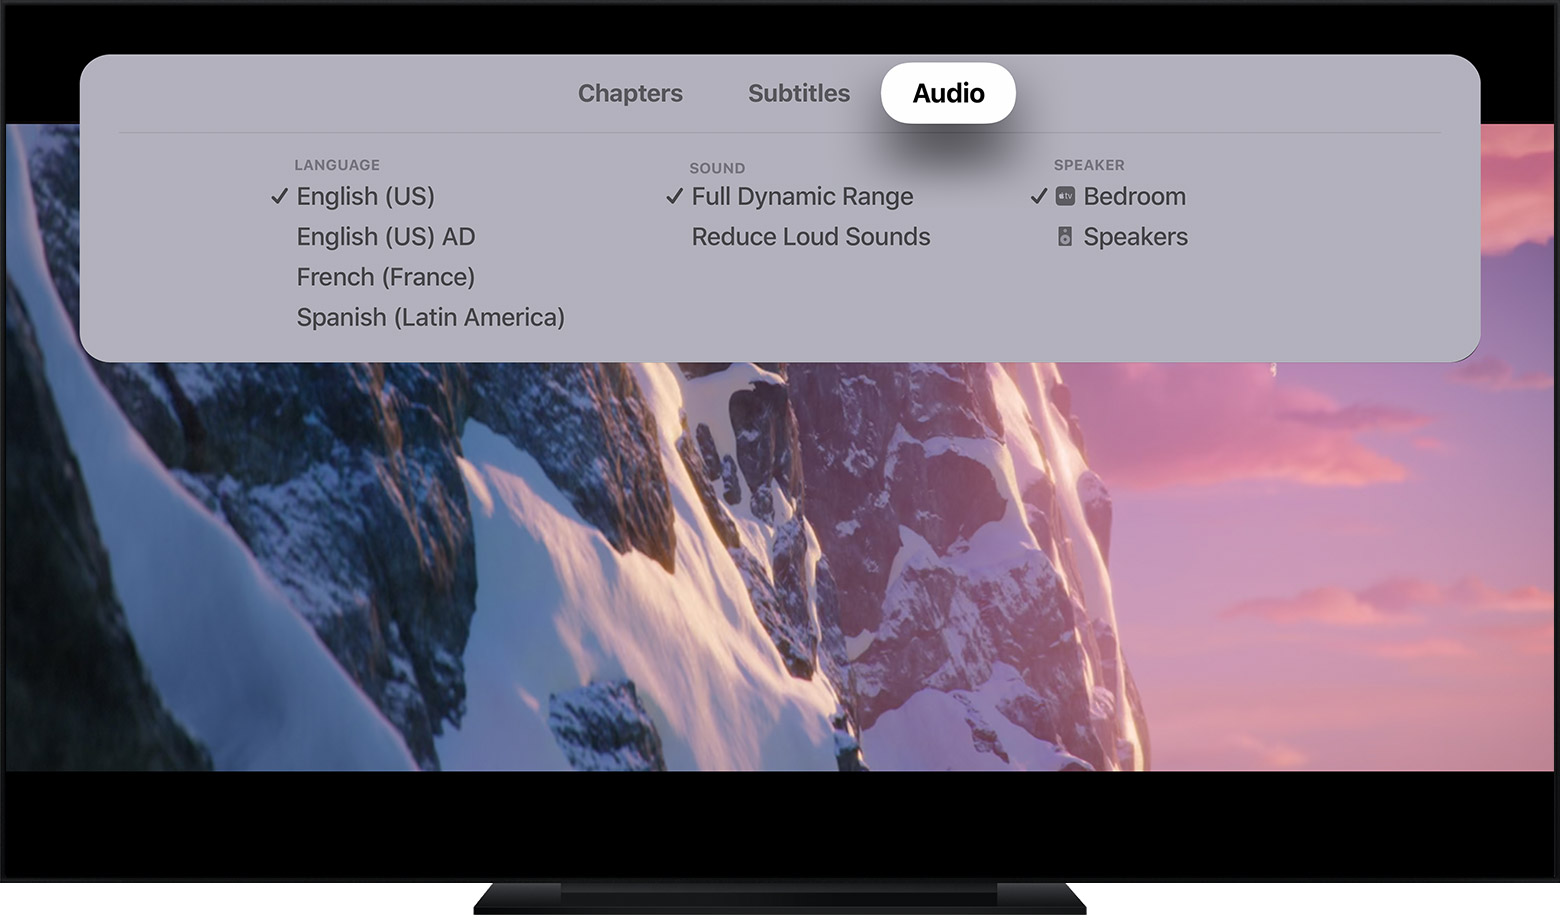 Change the subtitles or audio language for the Apple TV app